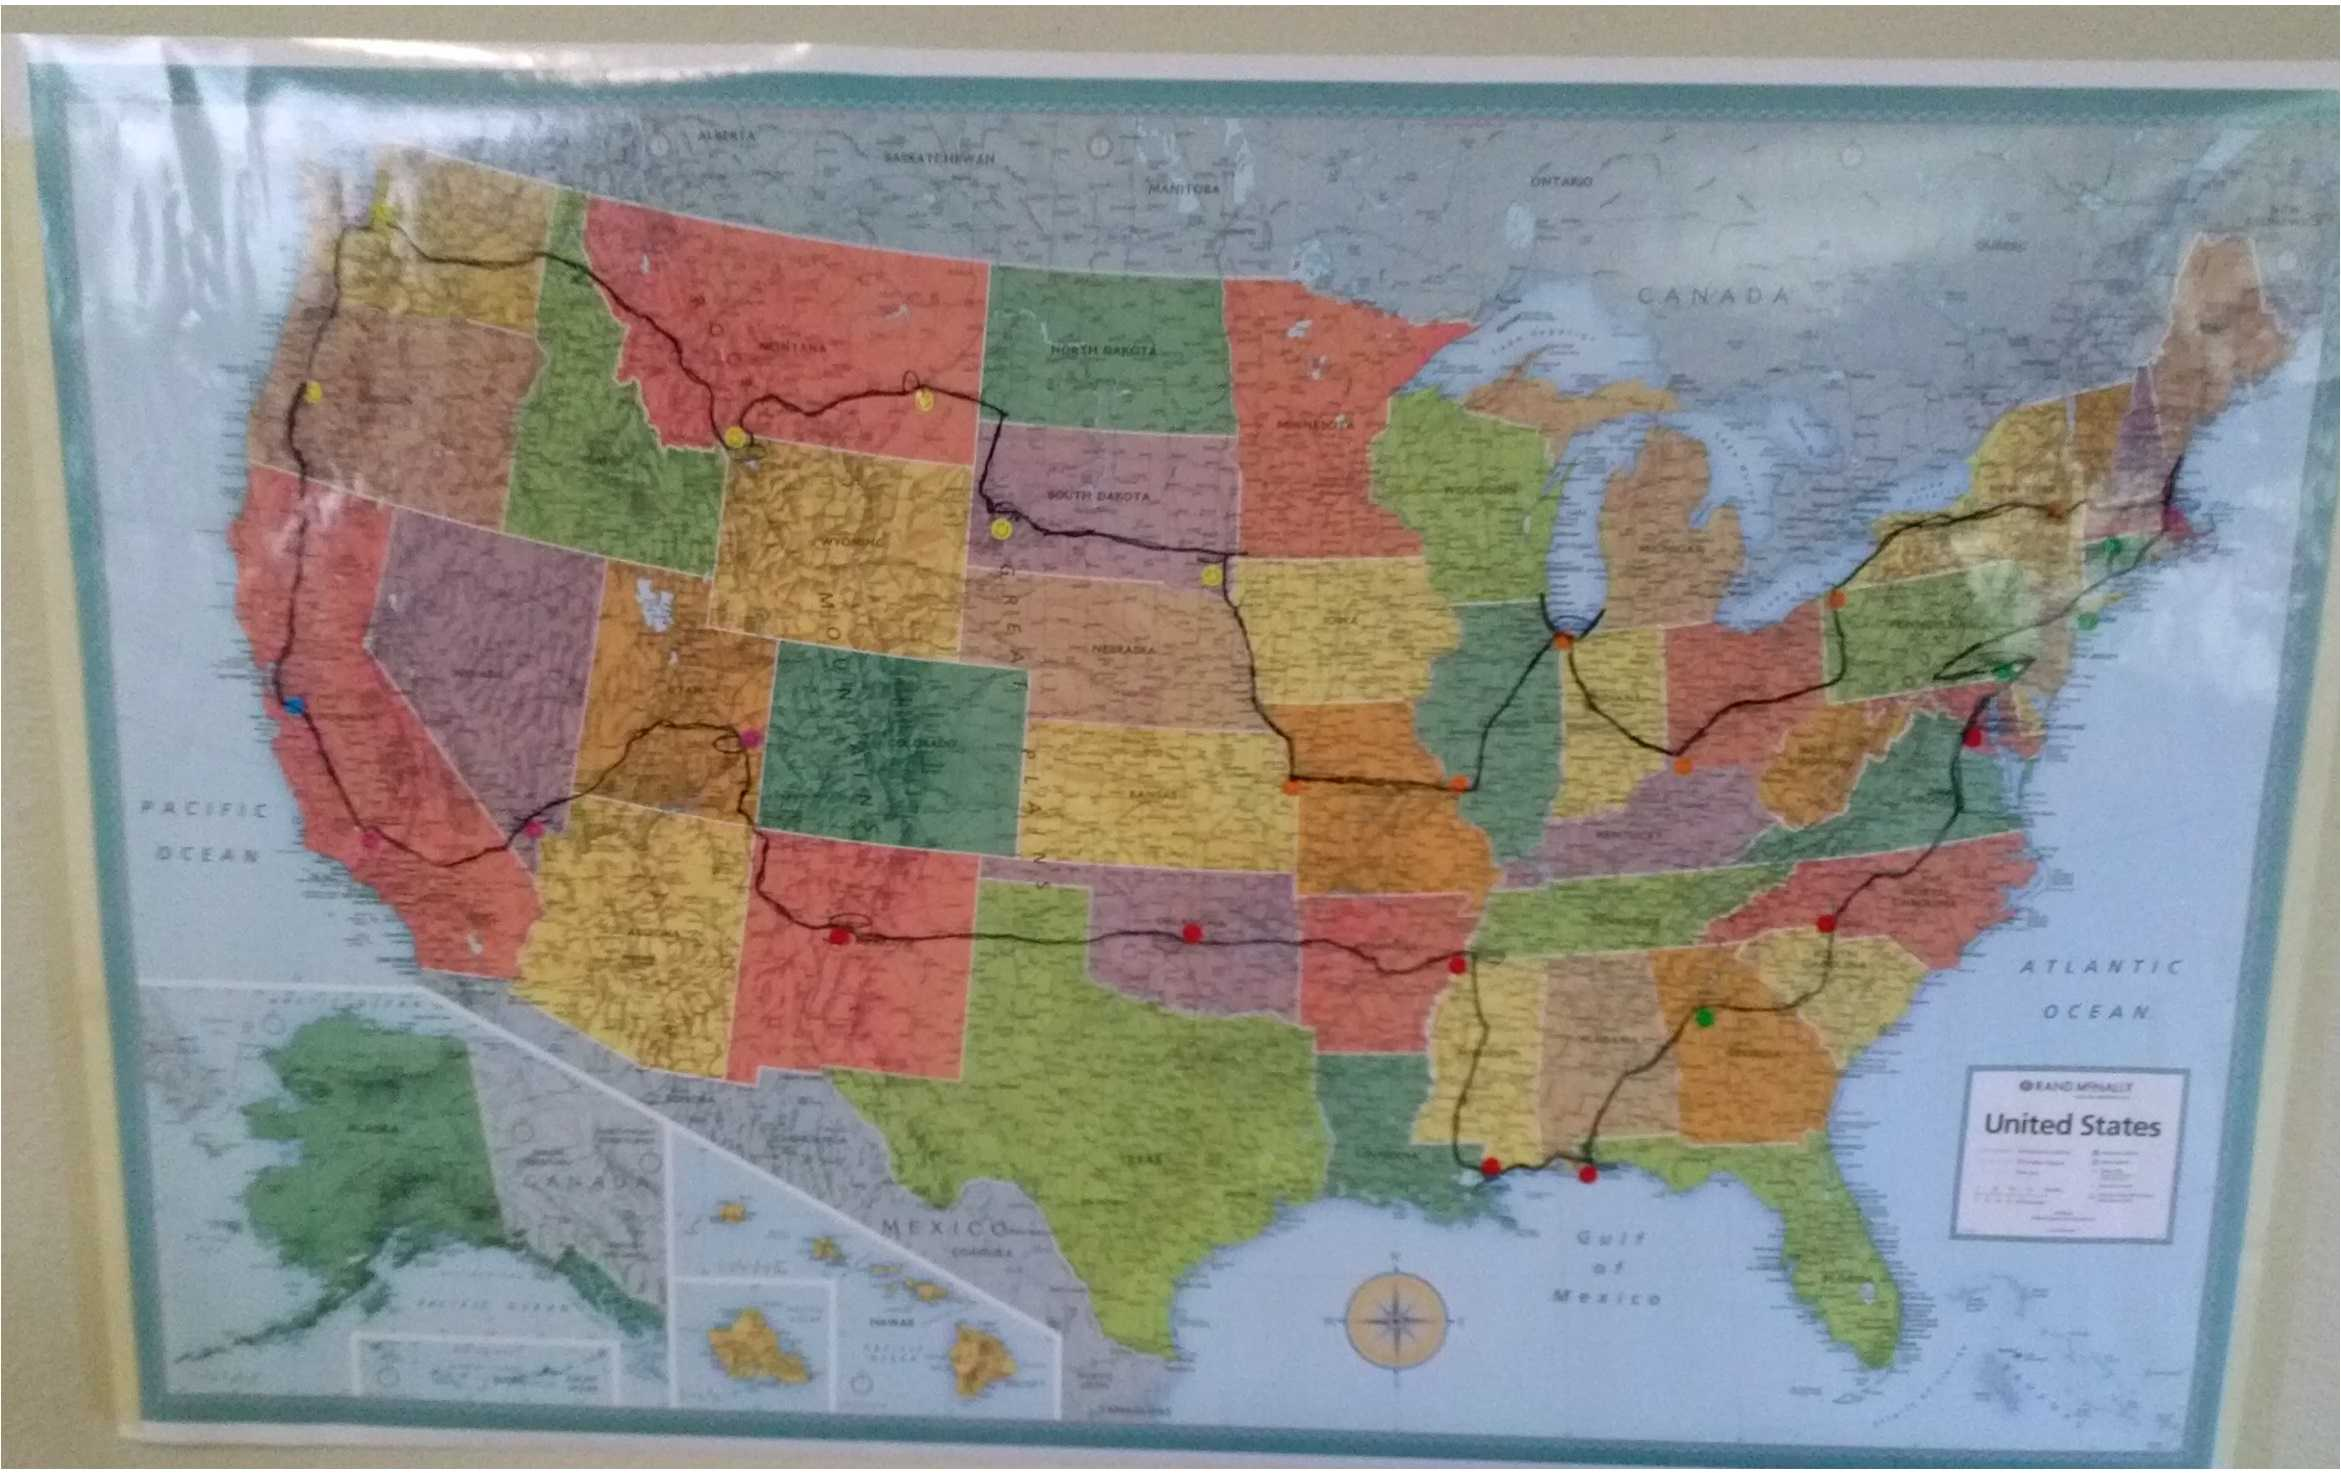 Kim's route around the United States. The black path traces their path. With permission from Joe Kim.